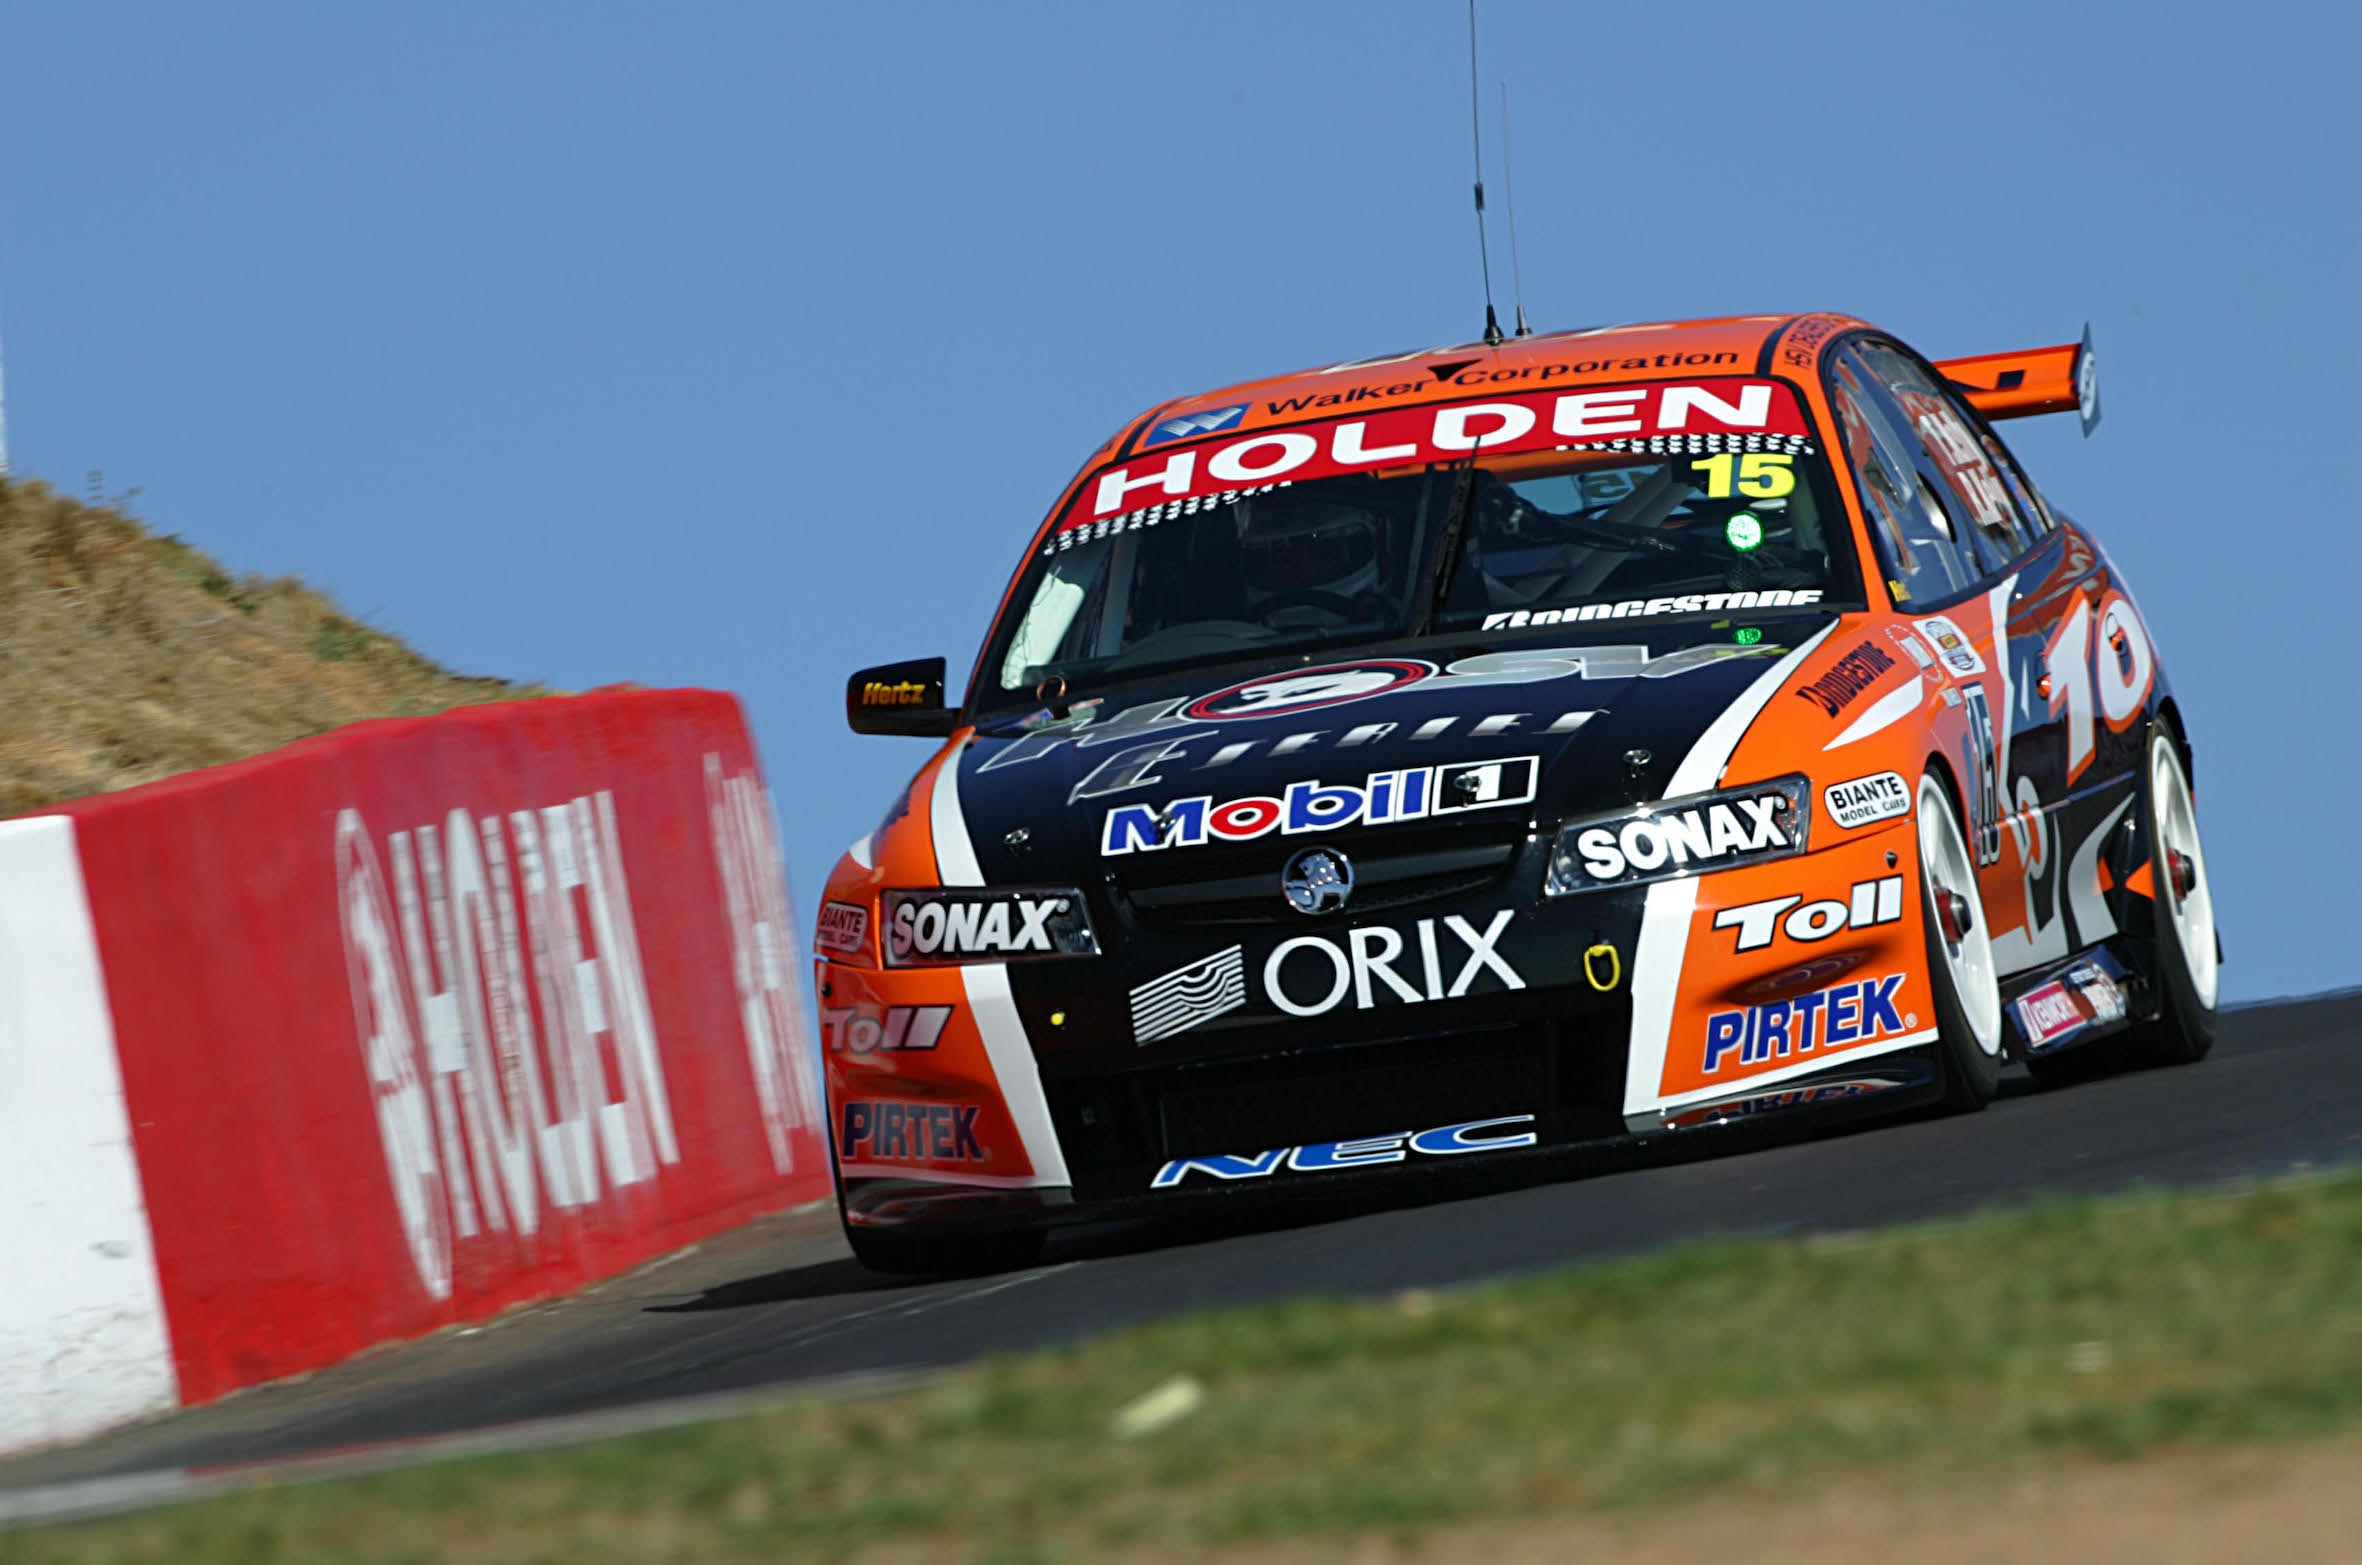 V8 Supercars during the Friday Practice sessions at Mt Panorama, Bathurst